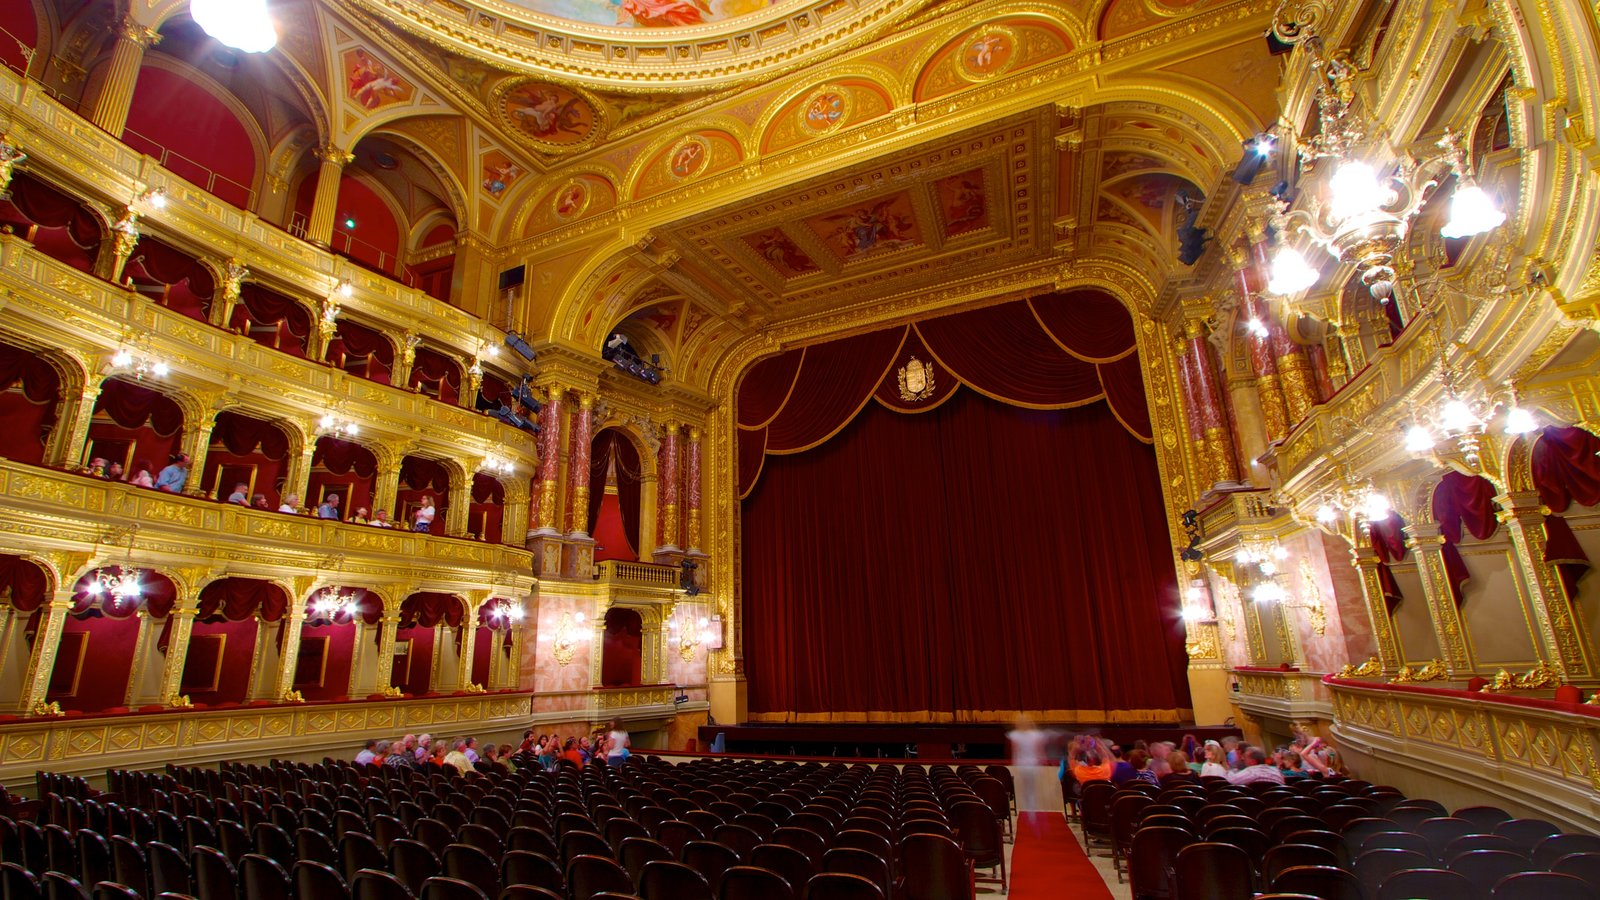 Hungarian State Opera House showing theatre scenes and interior views